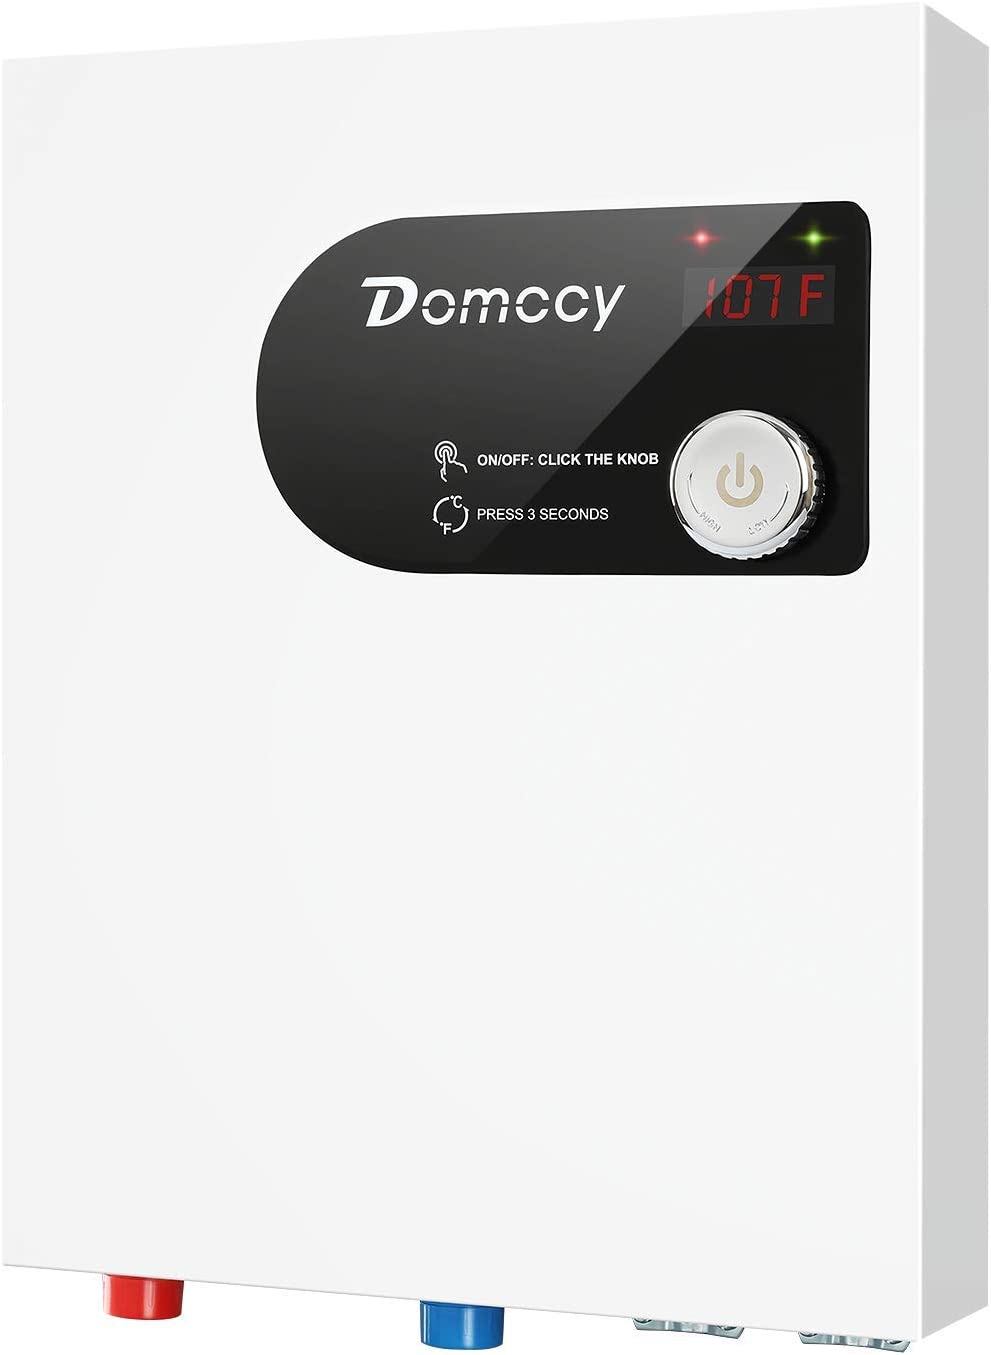 Tankless Water Heater Electric Instant On Demand 24KW 240V, Hot Water Heater Digital Display Premium Metal, Domccy Electric Hot Water Heater with Self-Modulating Overheating Protection, White